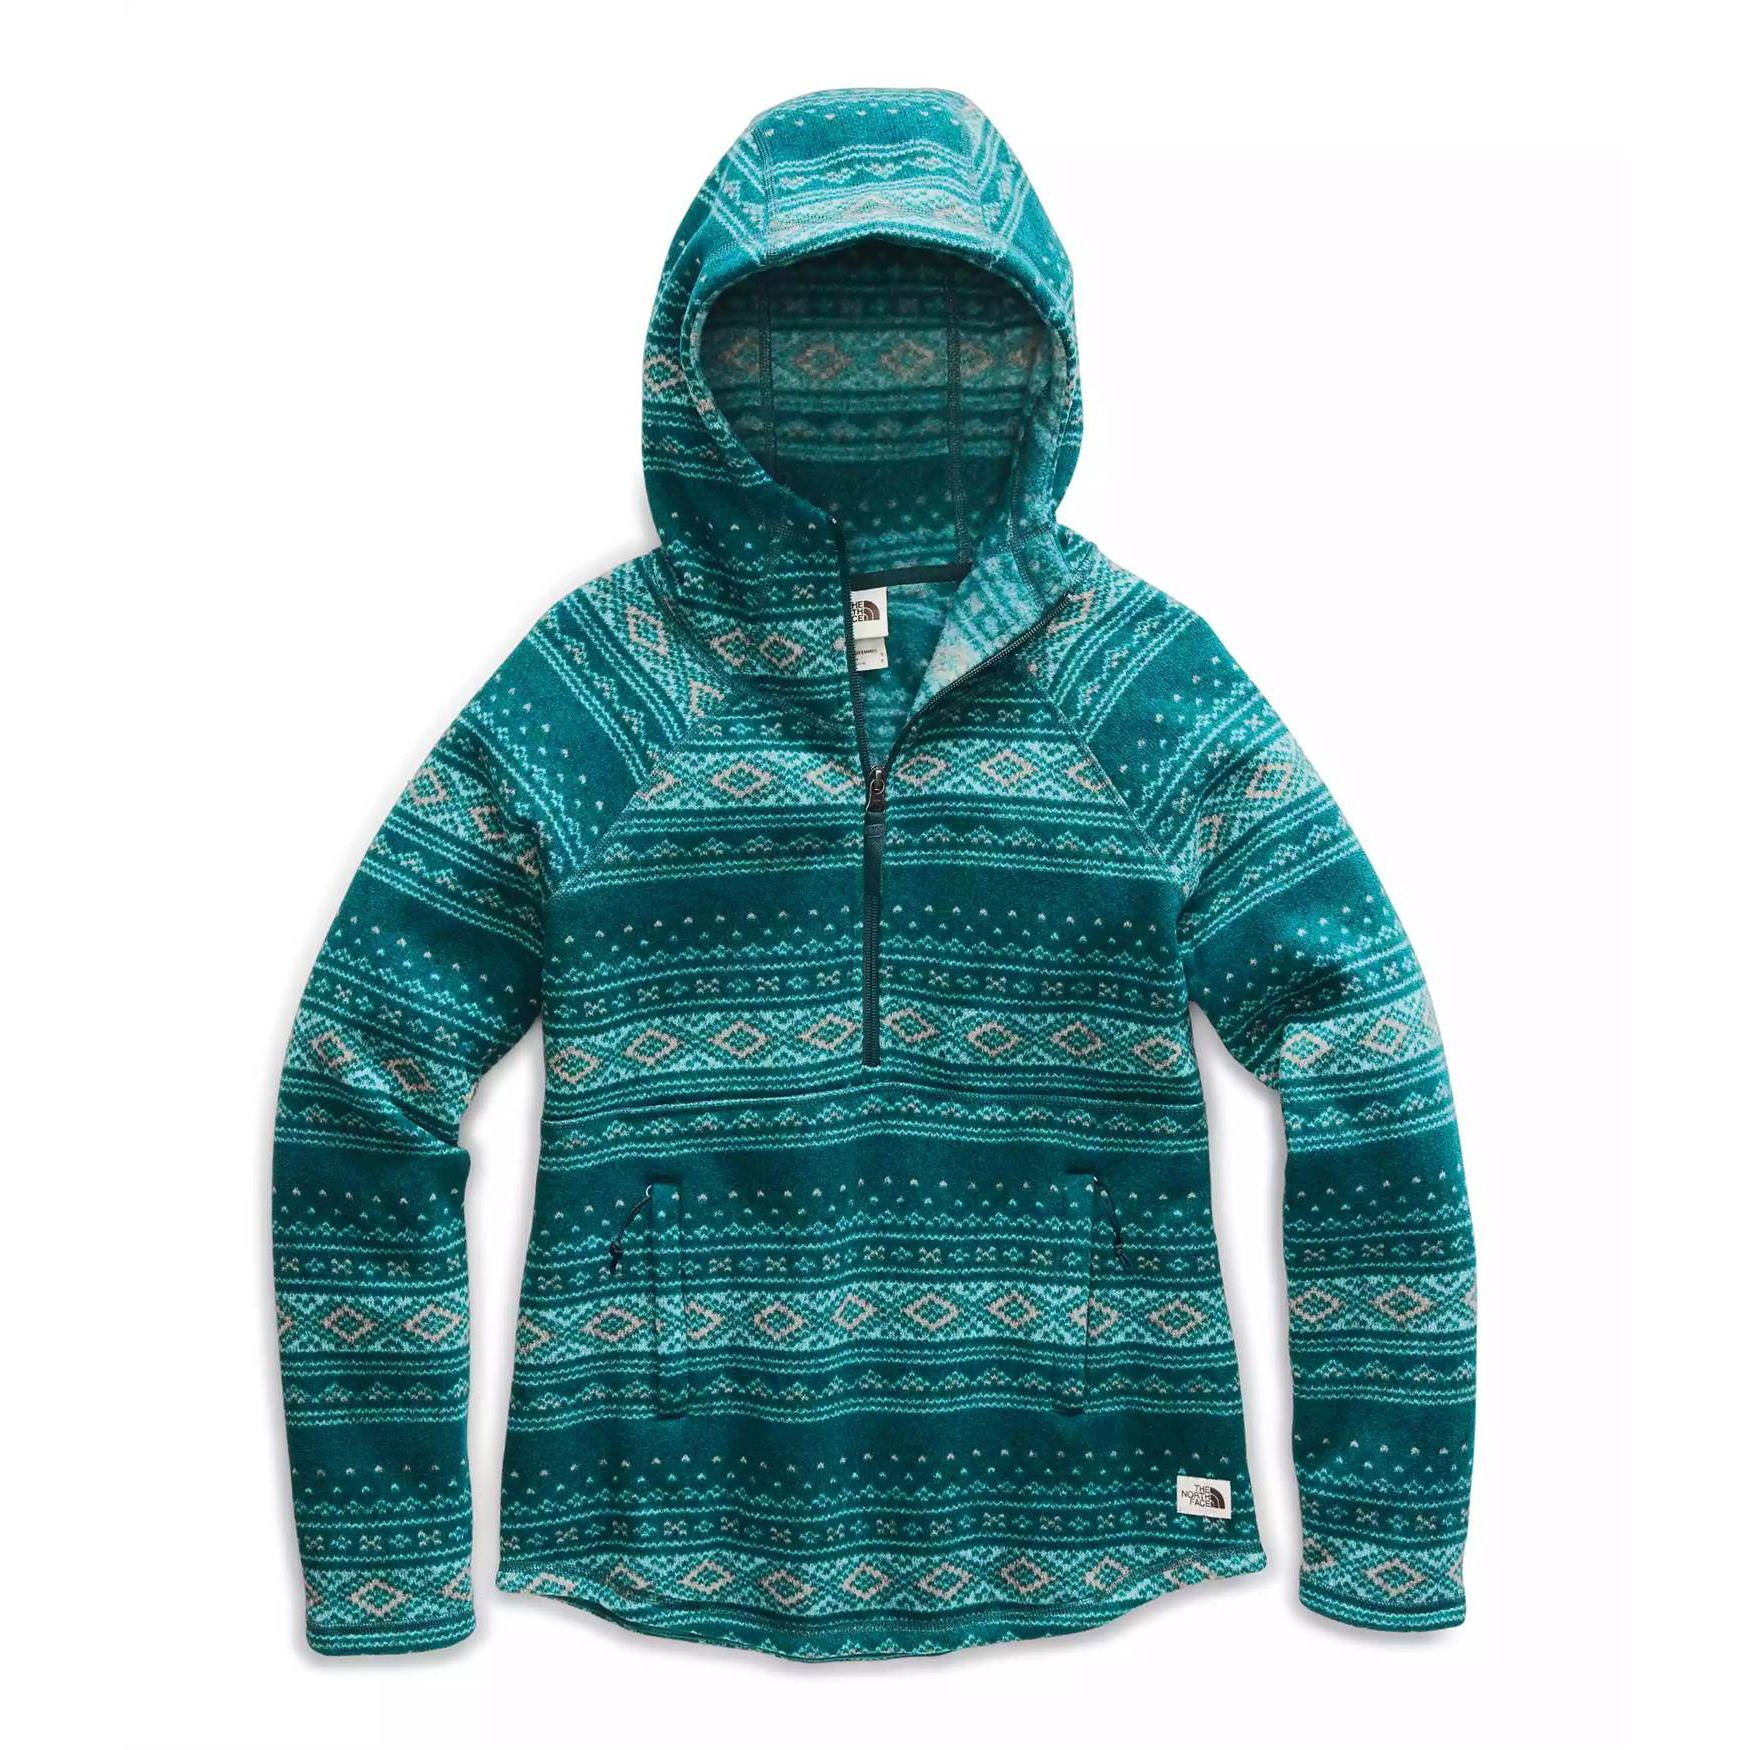 Printed Crescent Hooded Pullover - Women's